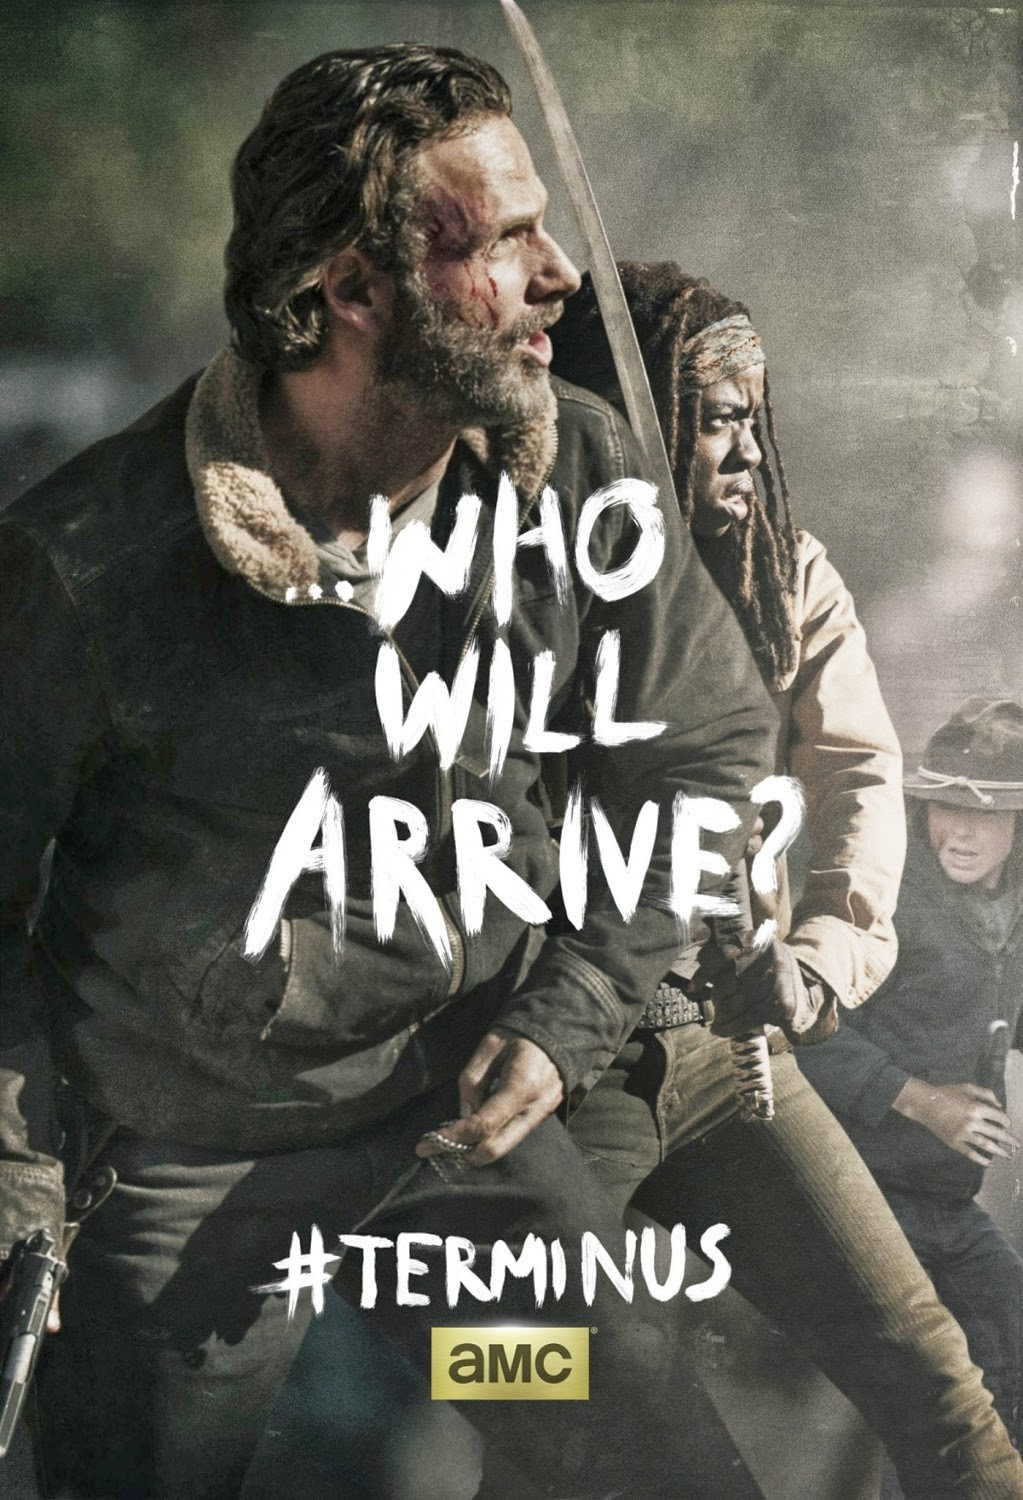 "The Walking Dead Season 4 Finale ""Terminus"" One Sheet Television Posters - ...Who Will Arrive? - Andrew Lincoln as Rick Grimes, Danai Gurira as Michonne & Chandler Riggs as Carl Grimes"